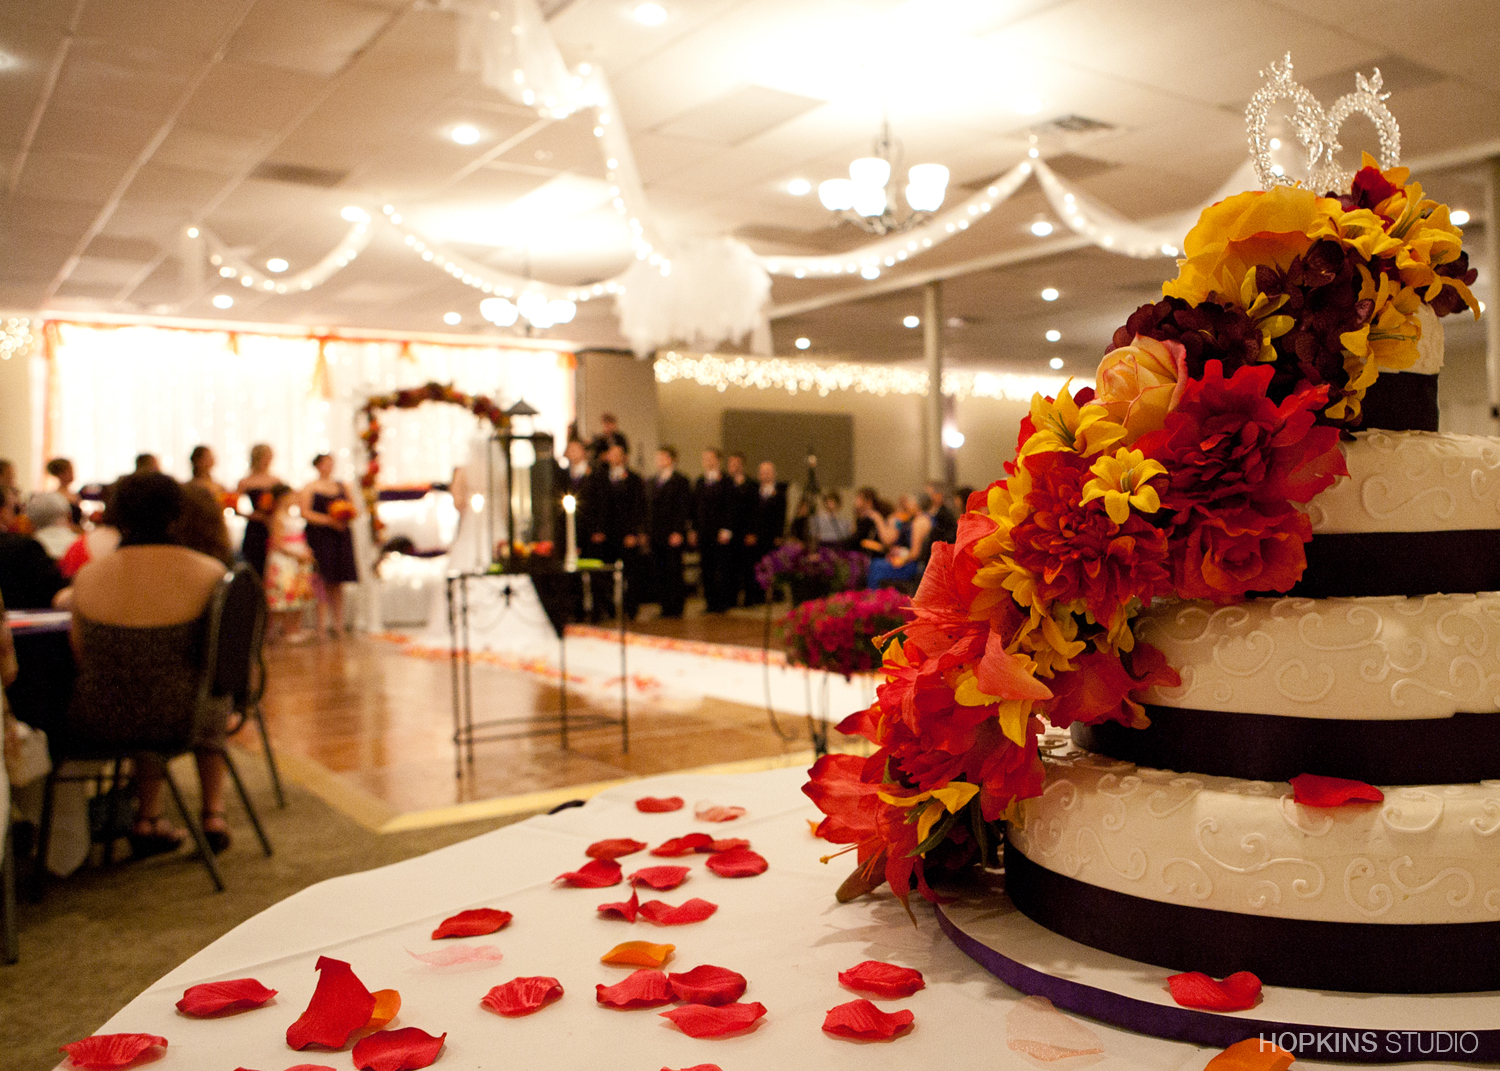 Wedding-Photography-Vineland-Center-St Joseph-Southwest-Michigan_83.jpg